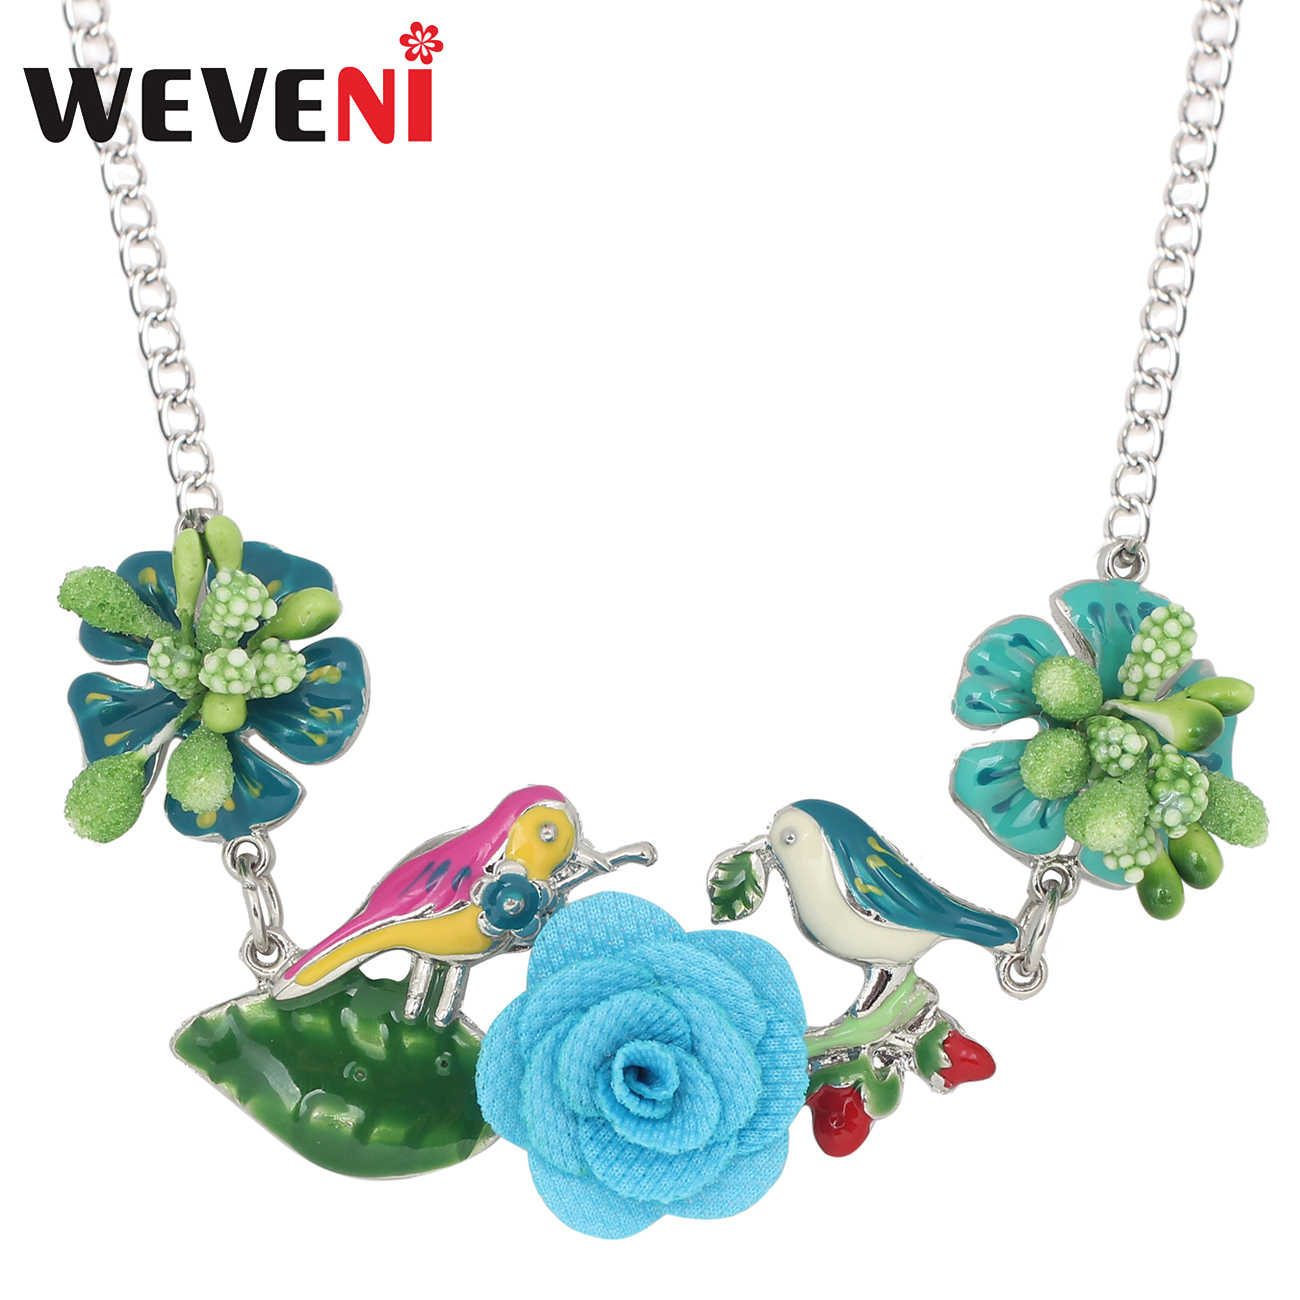 WEVENI Statement Enamel Alloy Flower Bird Leaf Necklace Choker Pendant Long Fashion Jewelry For Women Girls Gift Wholesale Party